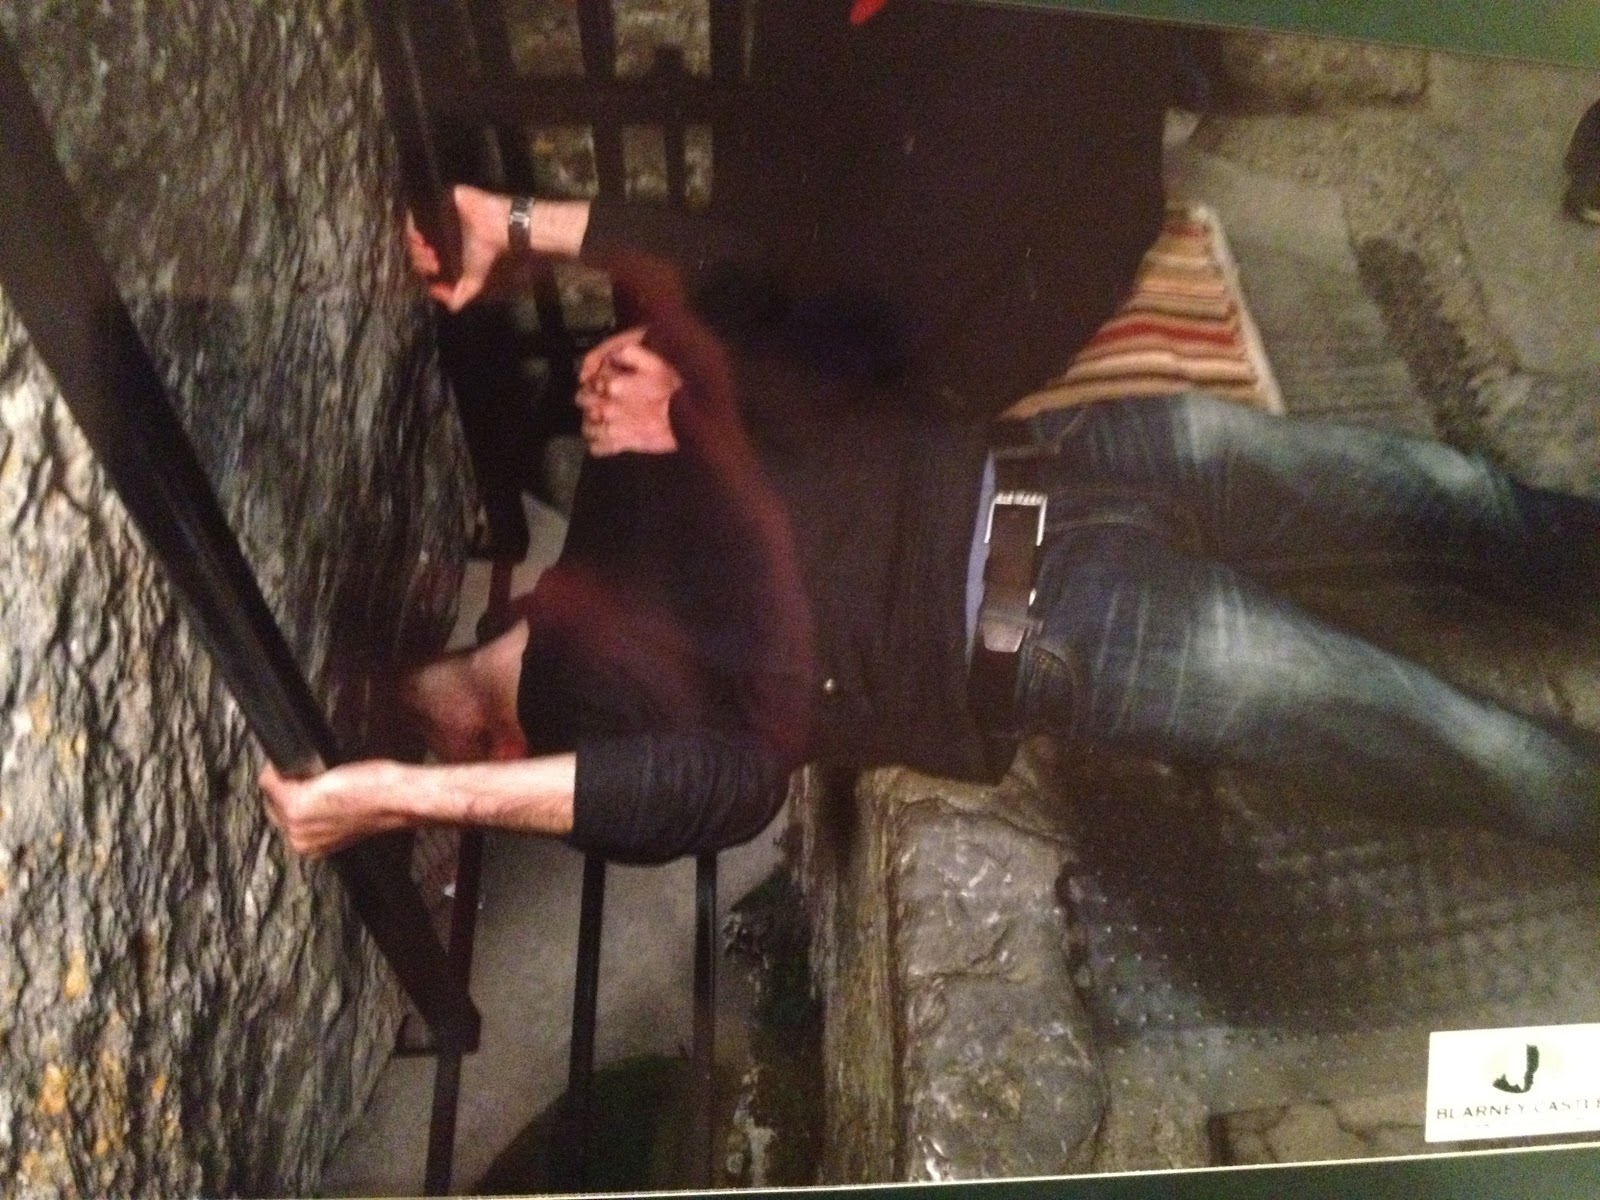 Simon kissing the Blarney Stone